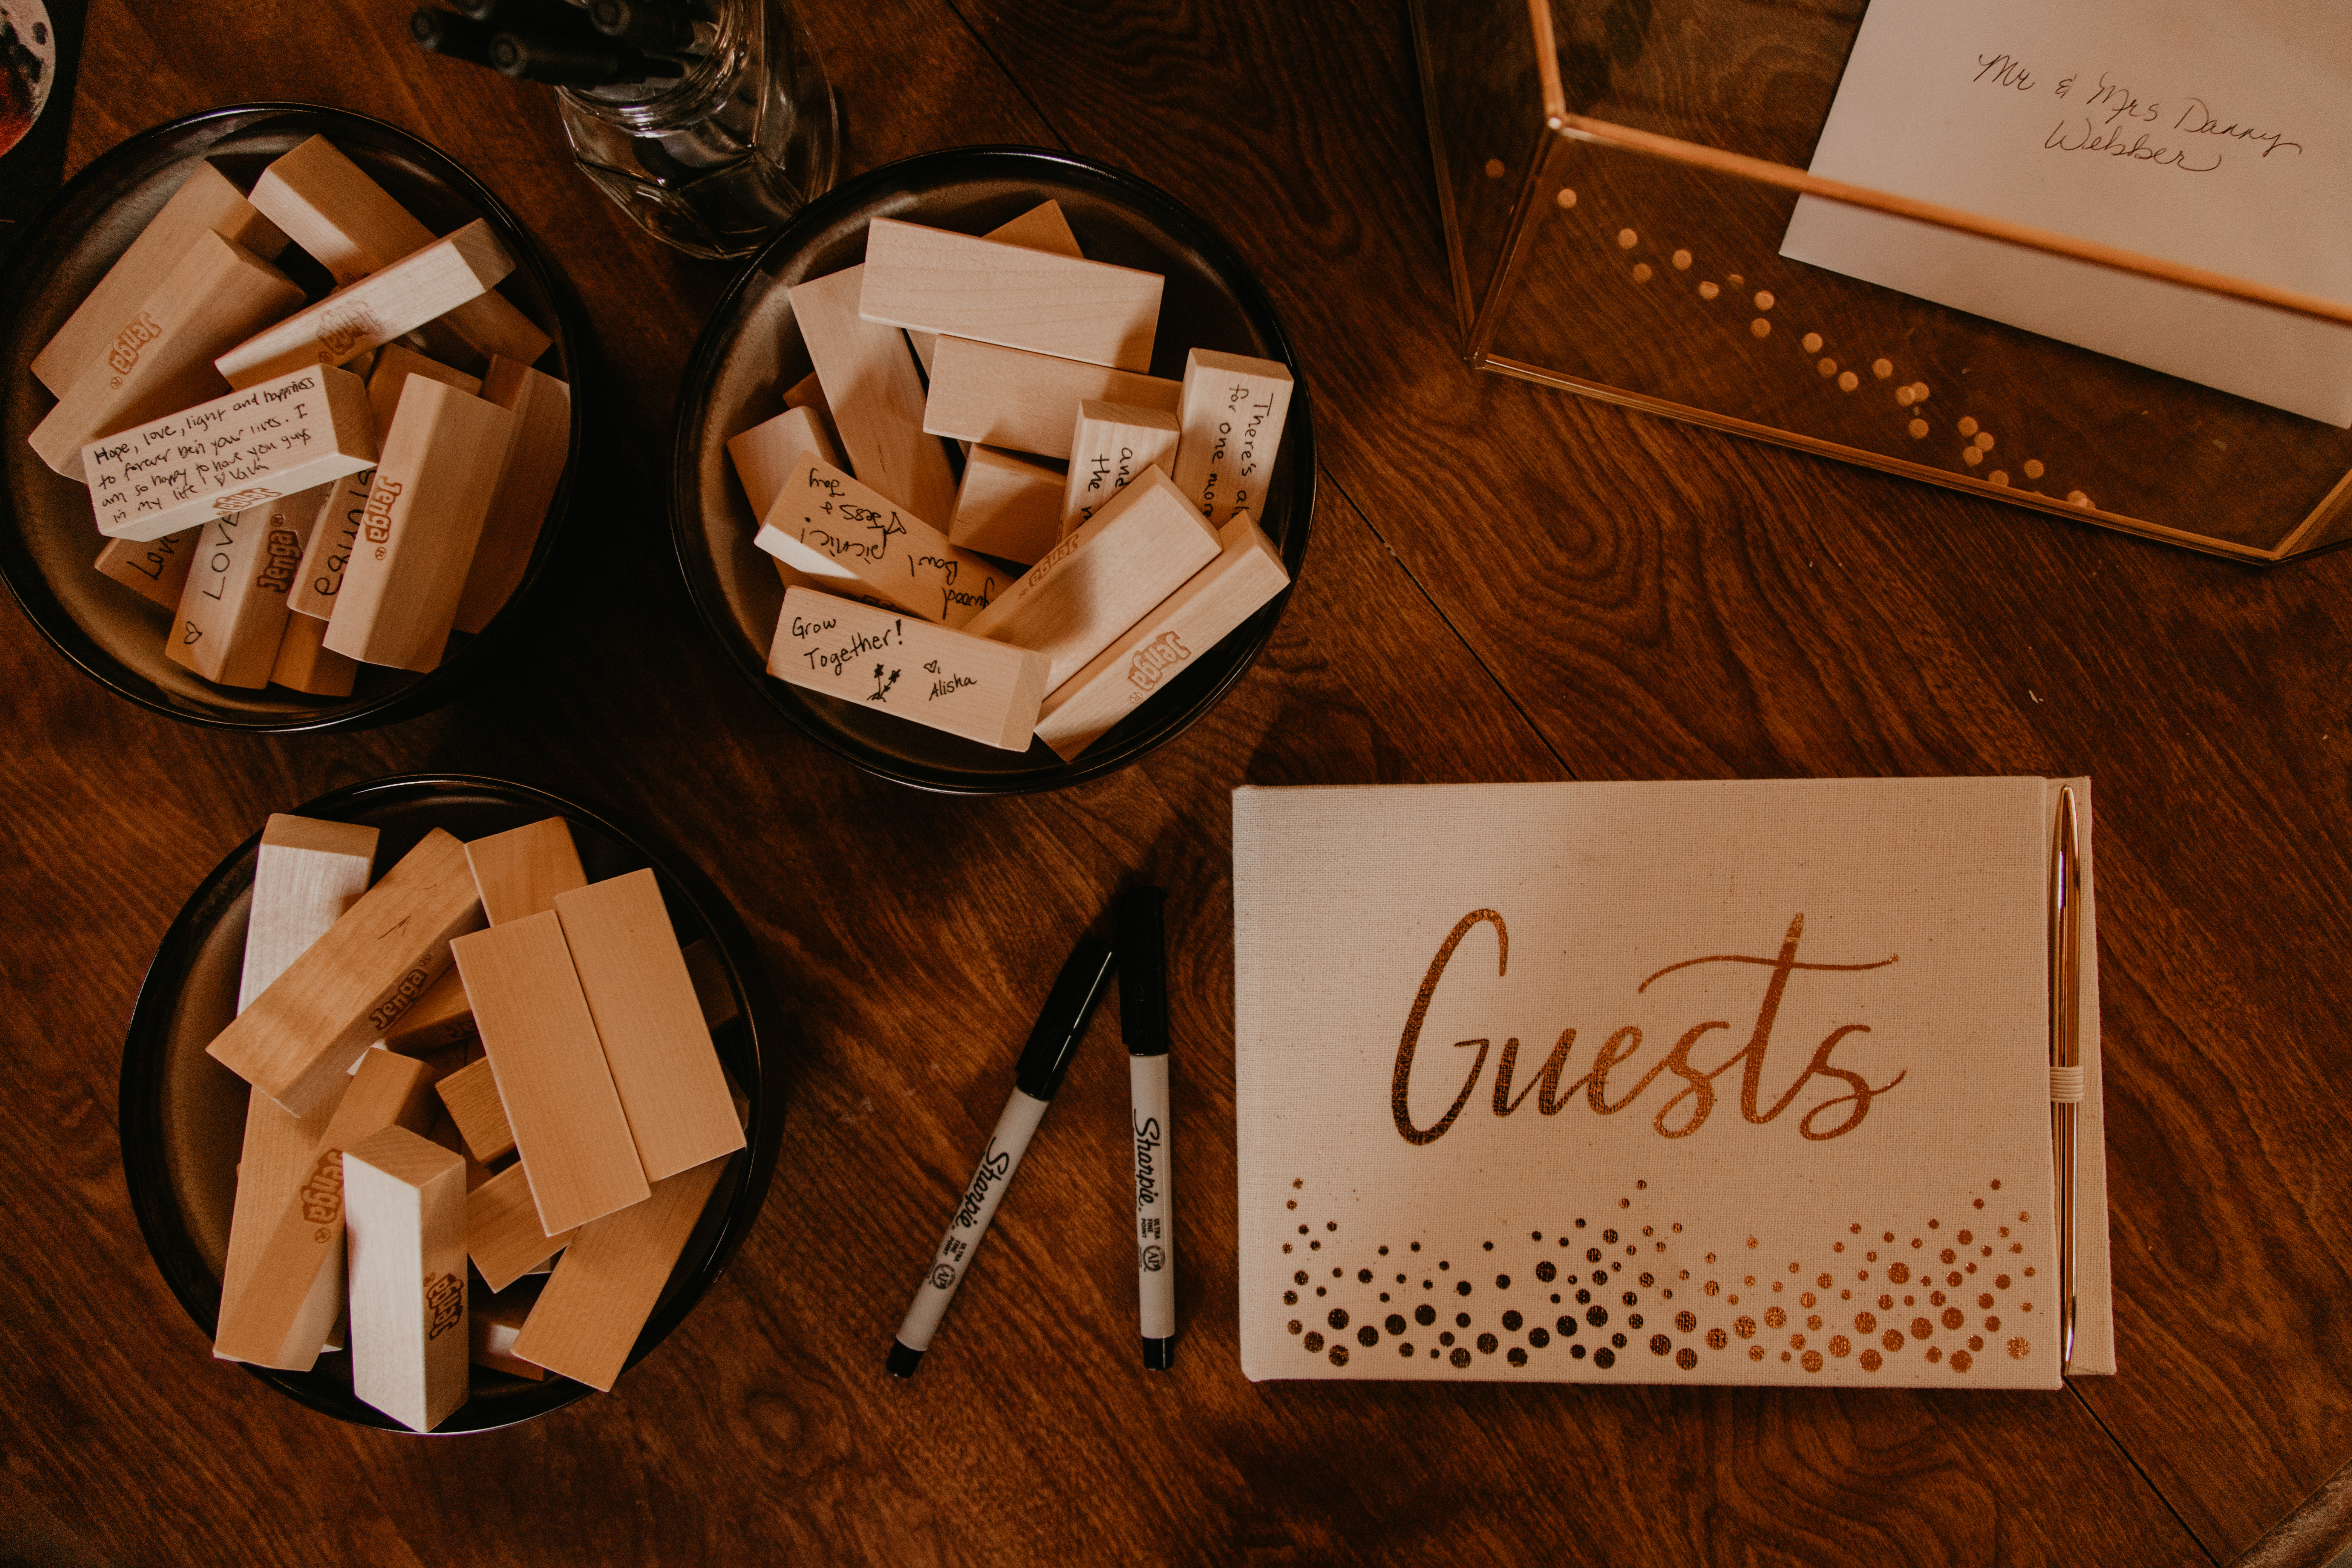 Guest book inspiration for wedding, photo by Fatima Elreda Photo